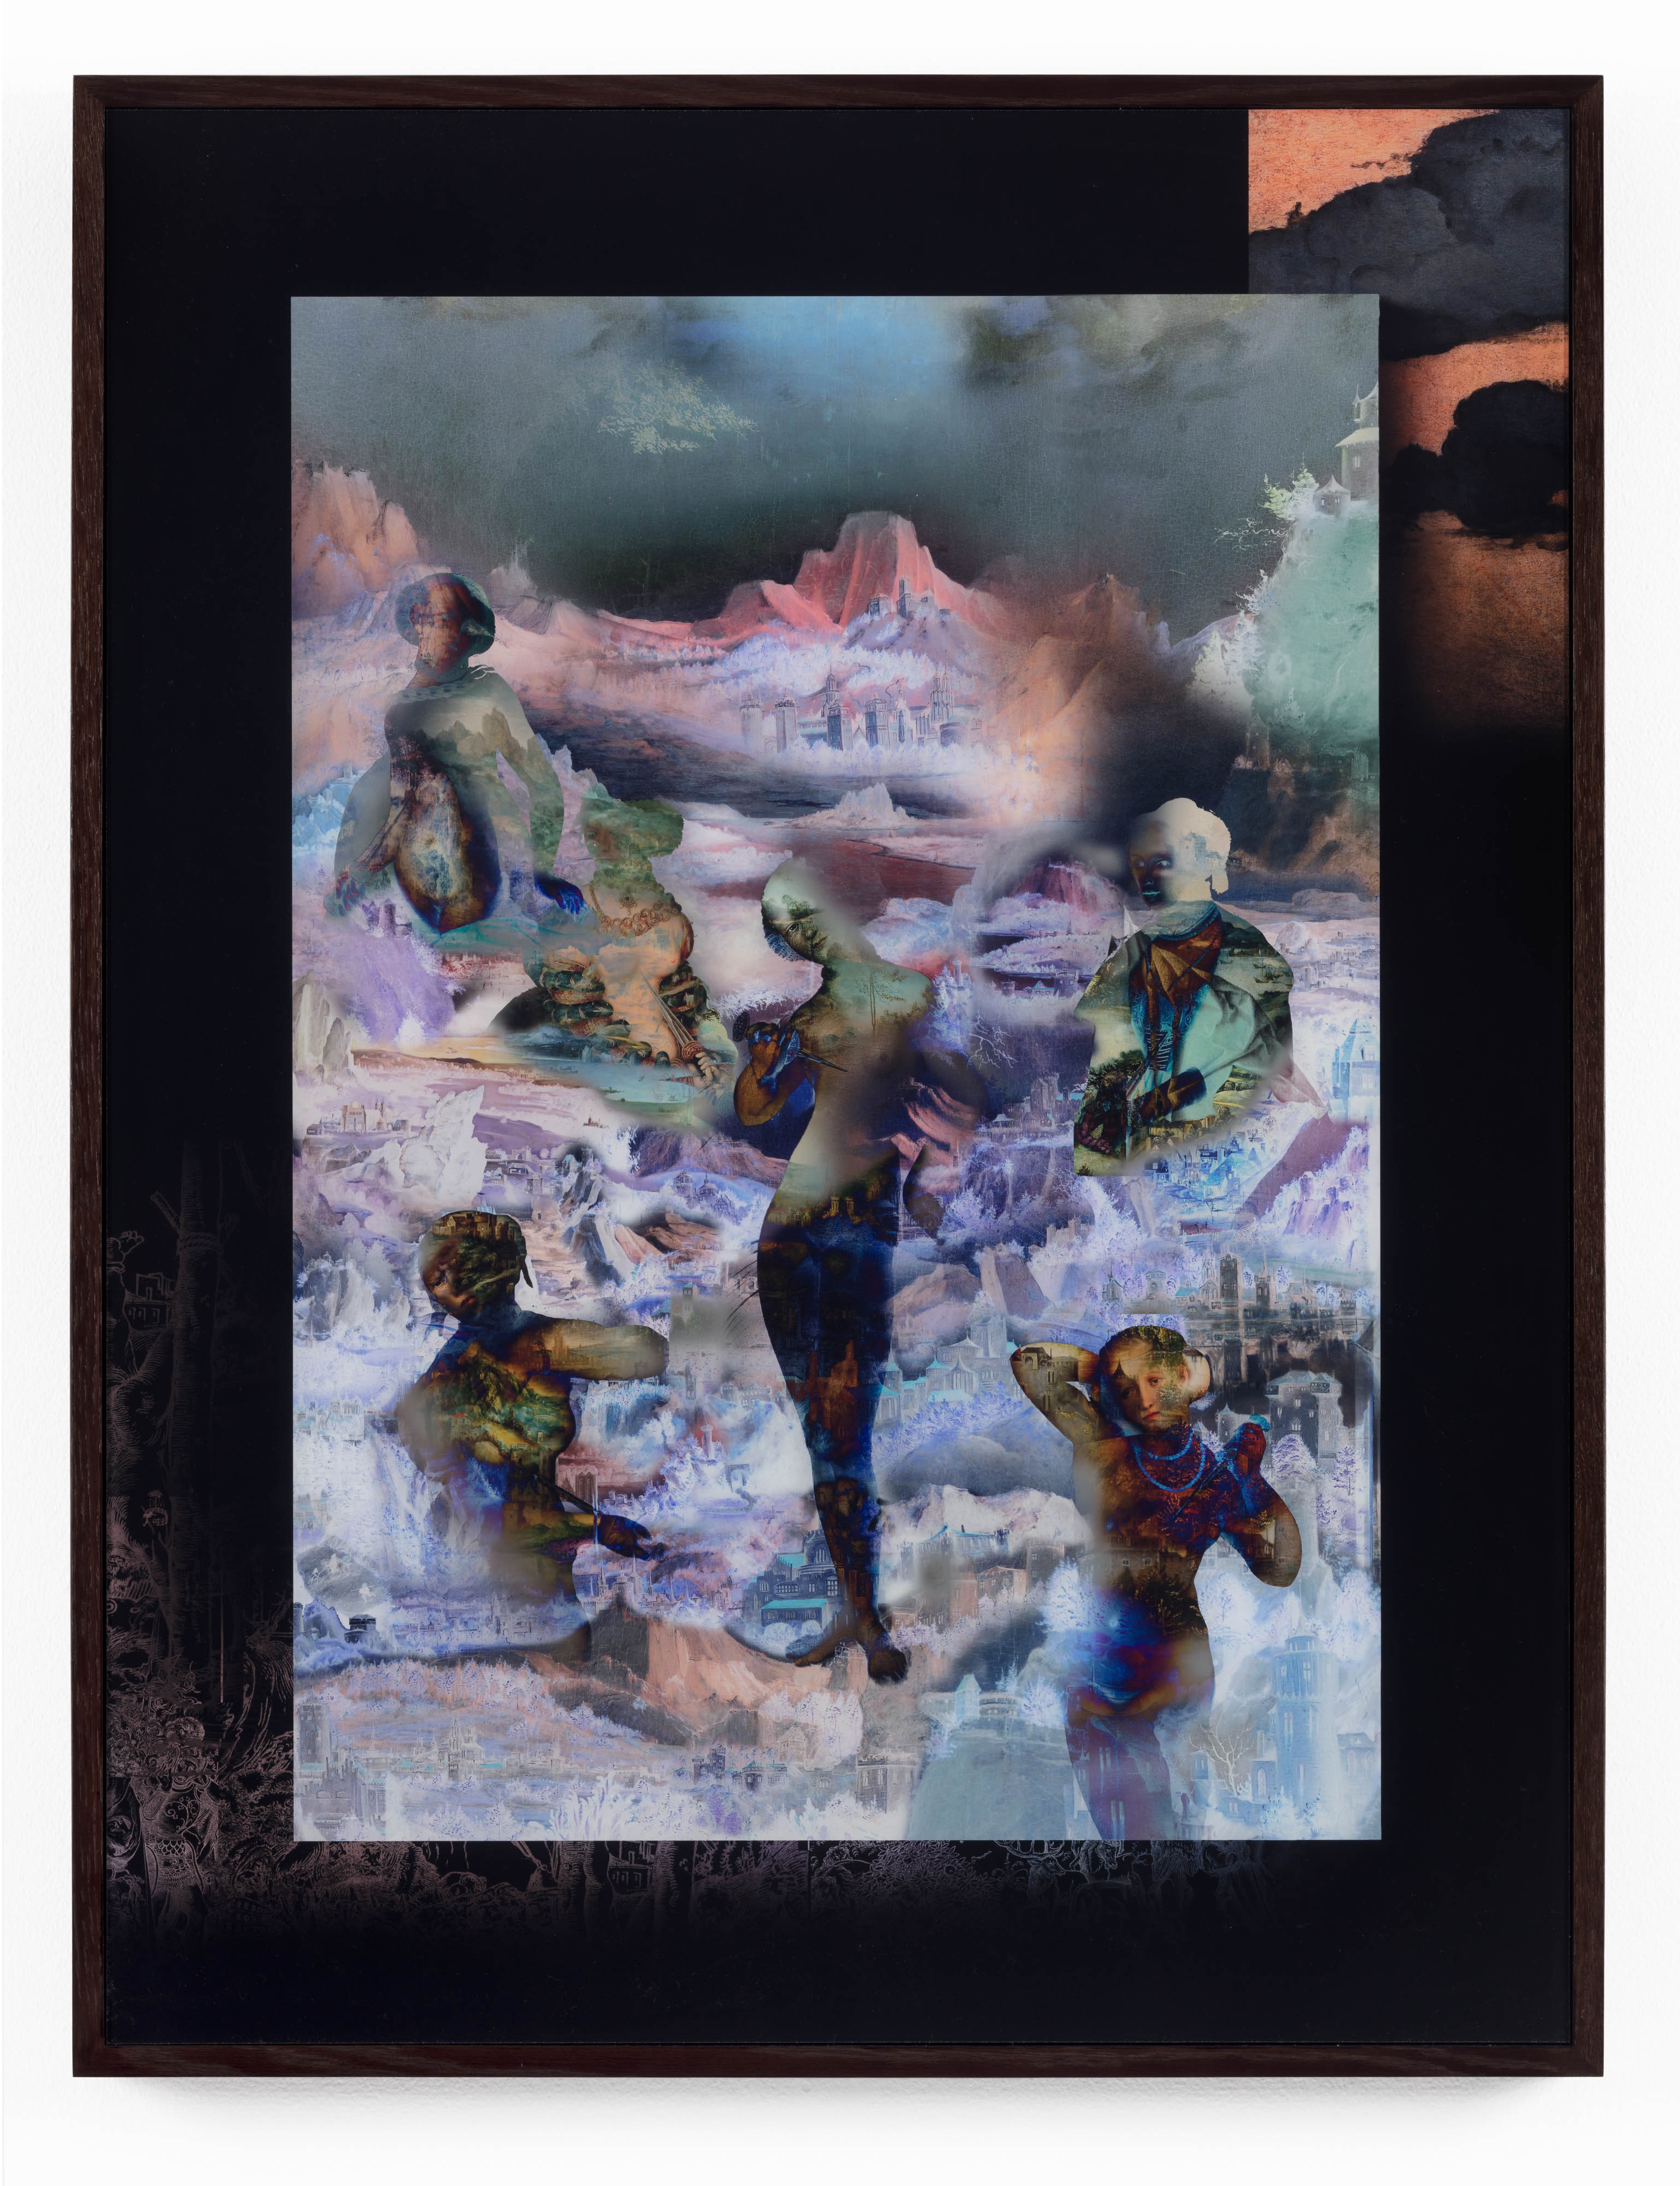 David Molander, Lucretia, 2017, Diasec mounted inkjet print, acrylic glass, oak frame, 93 x 71 cm, edition of 5